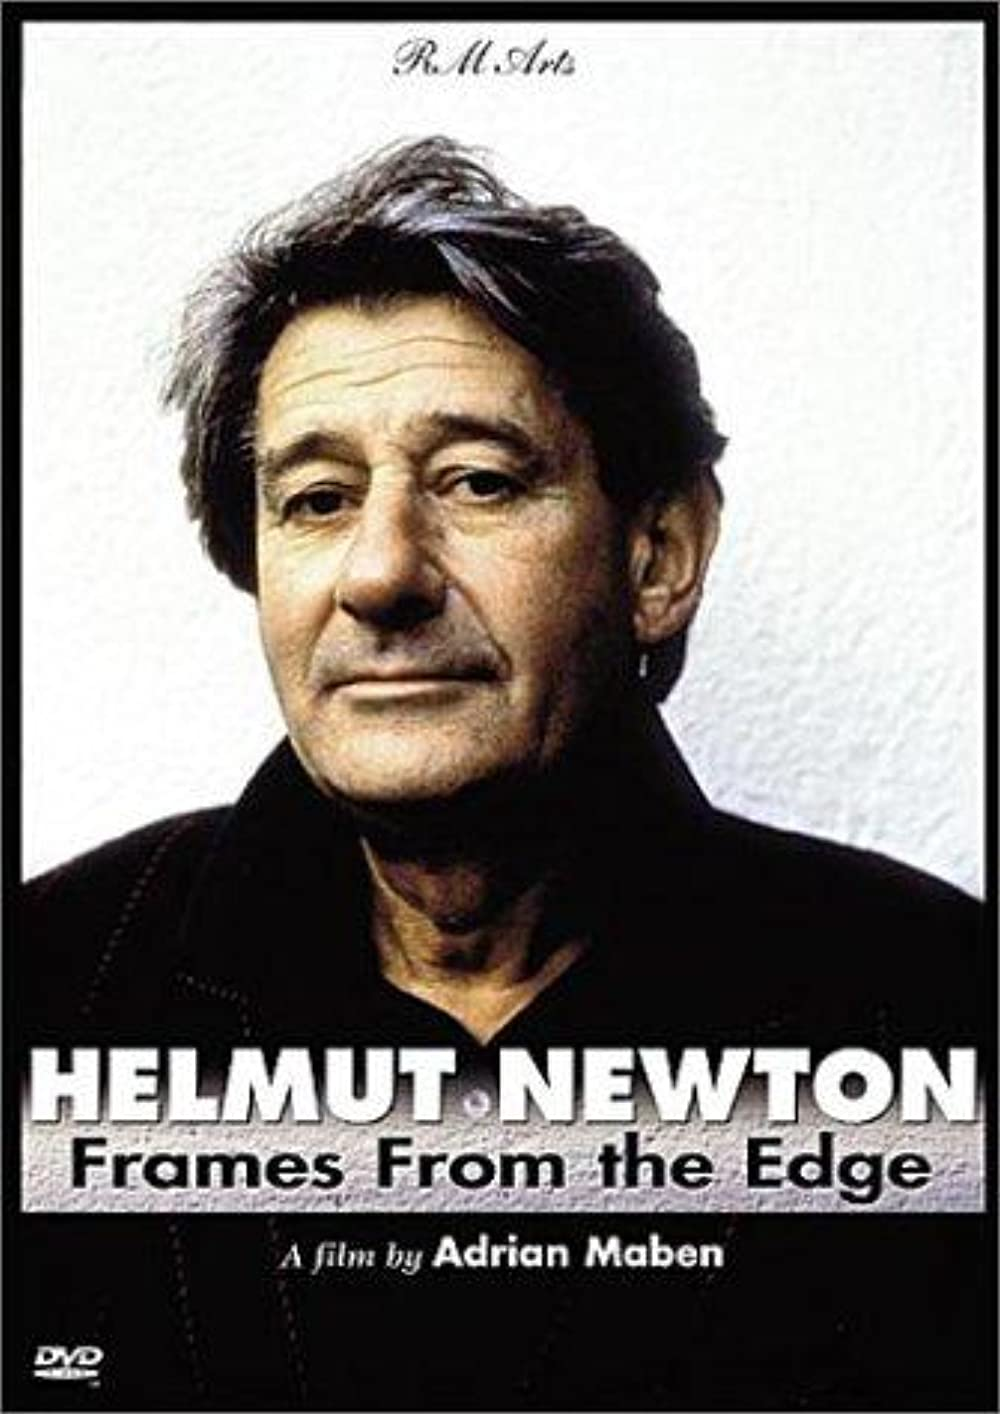 Watch Helmut Newton: Frames from the Edge Online